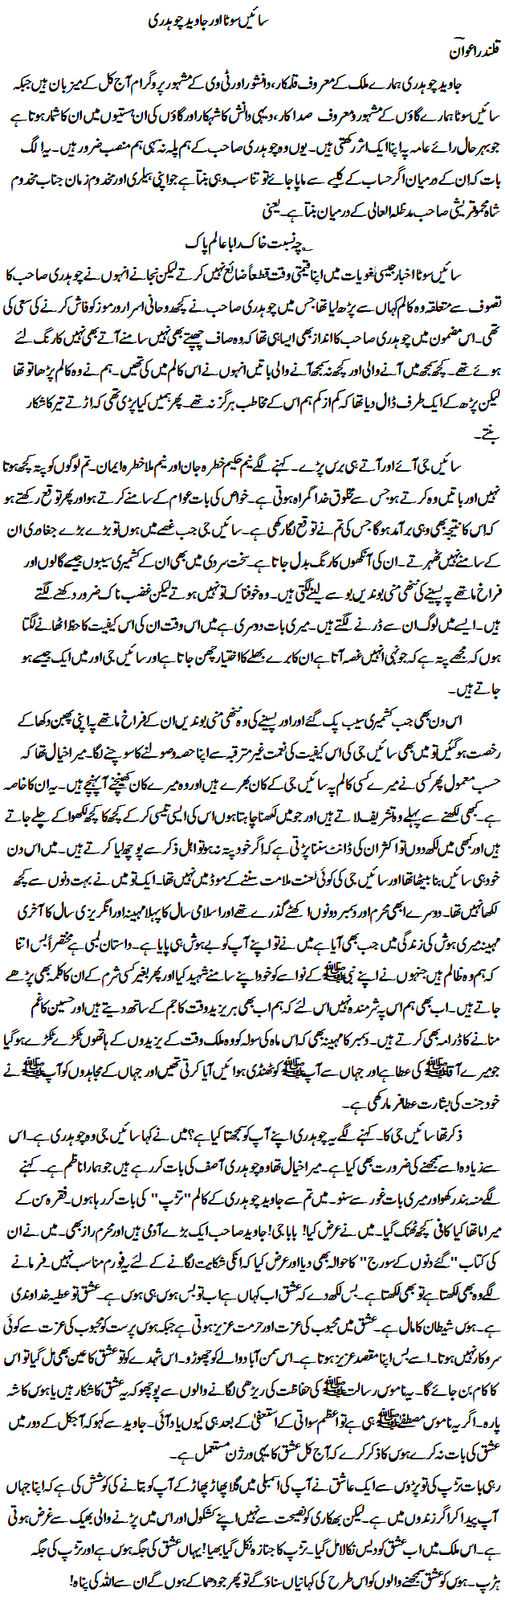 sain soota and javed chaudhry, Qalandar Awan columns